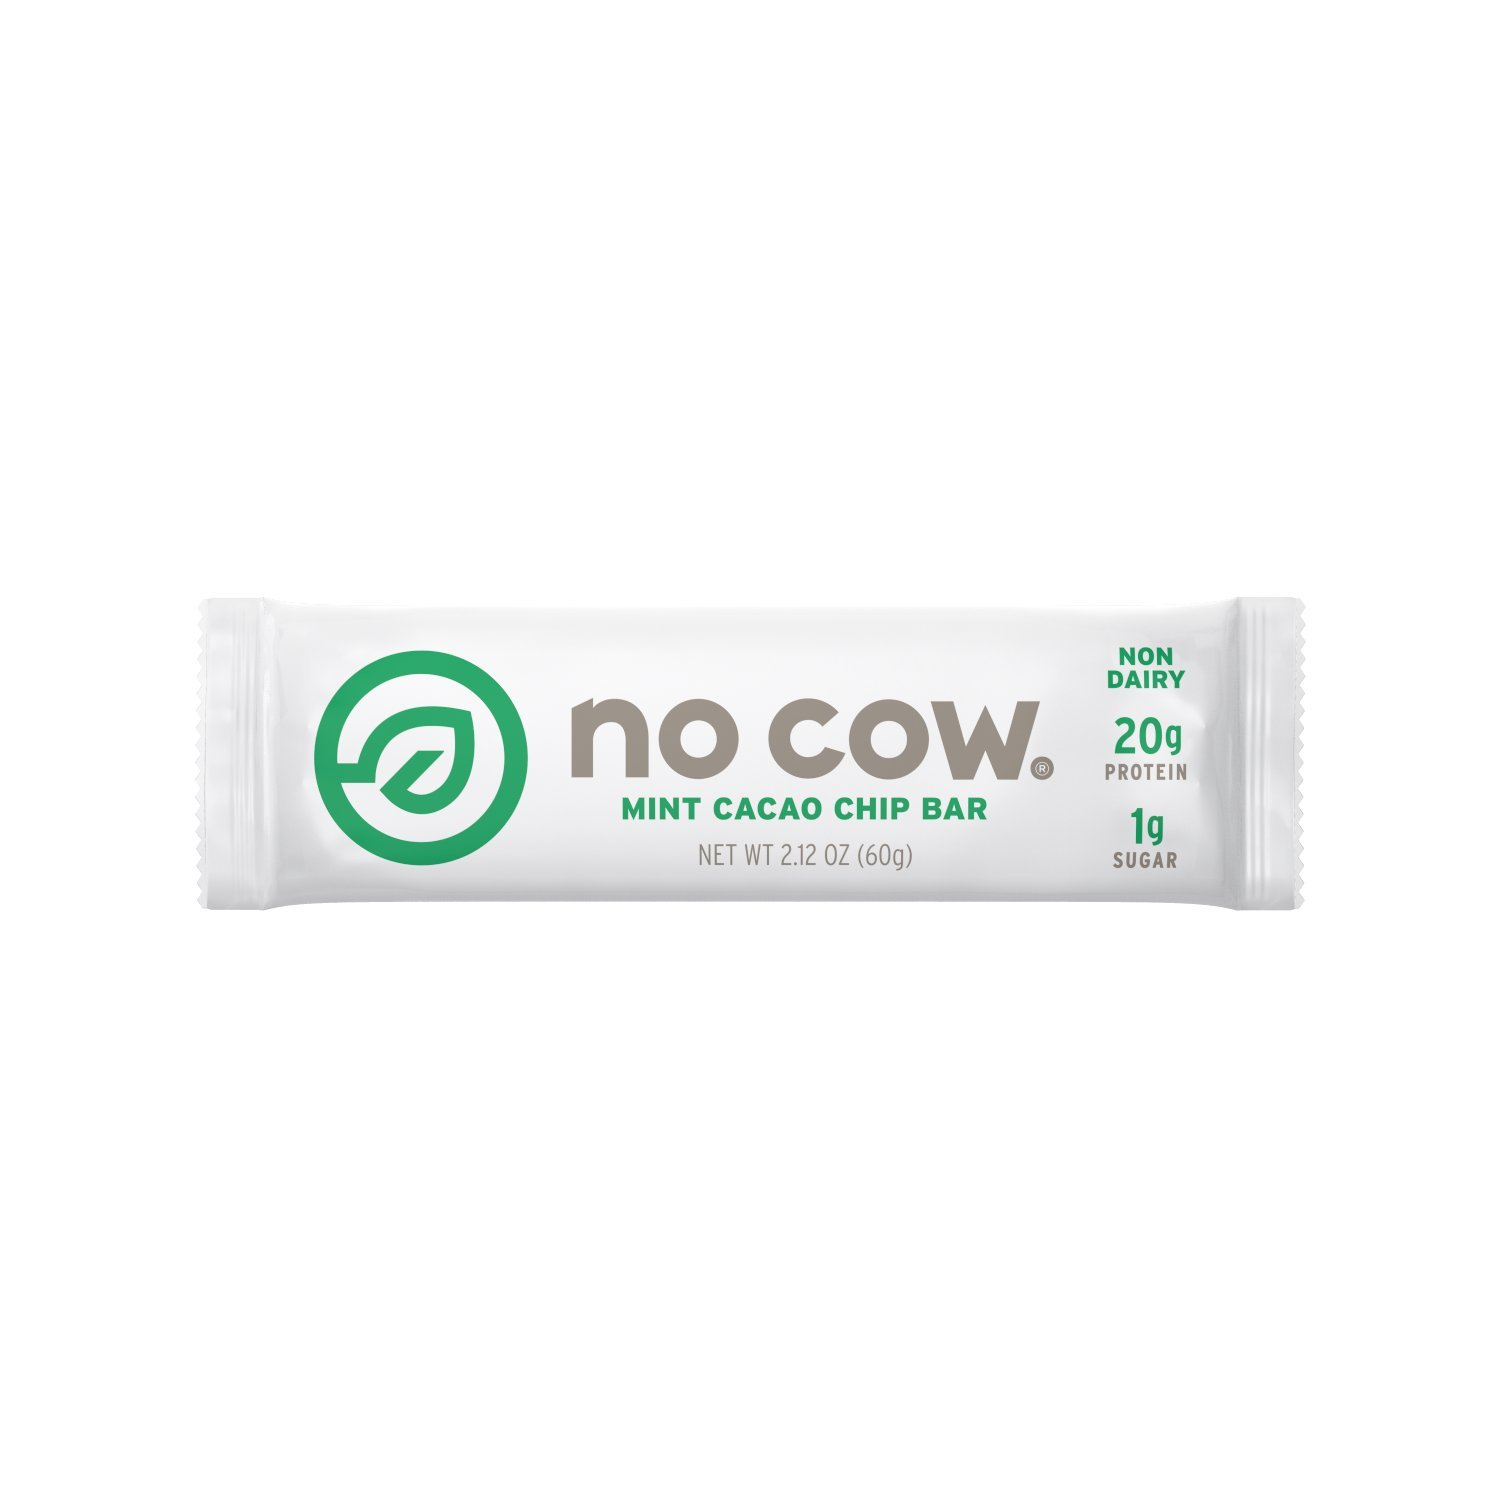 No Cow Protein Bar, Mint Cacao Chip, 20g Plant Based Protein, Low Sugar, Dairy Free, Gluten Free, Vegan, 12 Count